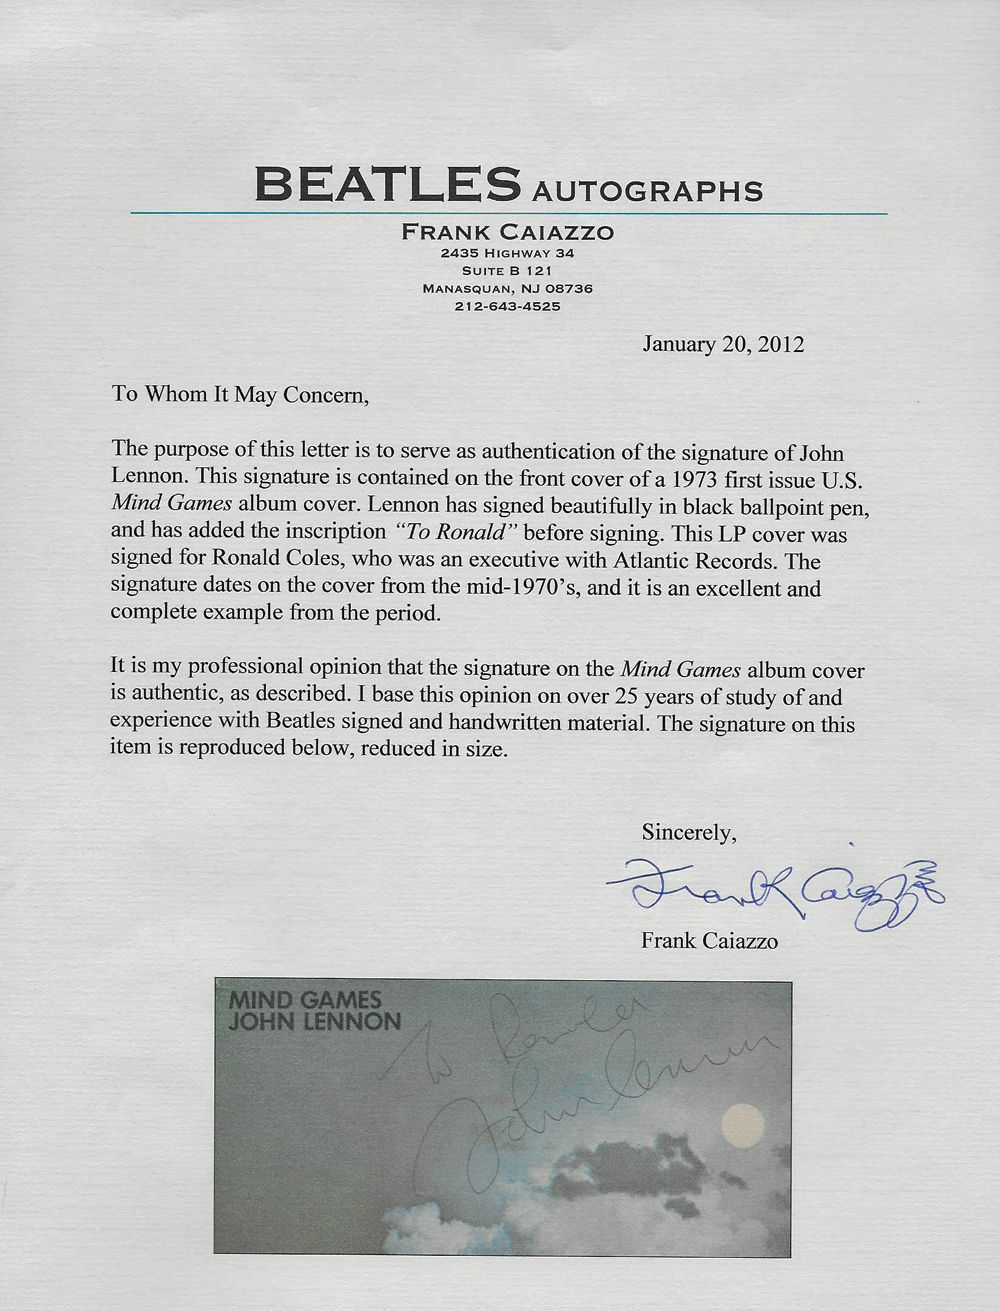 Lot Detail The Beatles John Lennon Extraordinary Signed Album Mind Games One Of The Finest Signed Lennon Albums Extent Caiazzo Perry Cox Loas